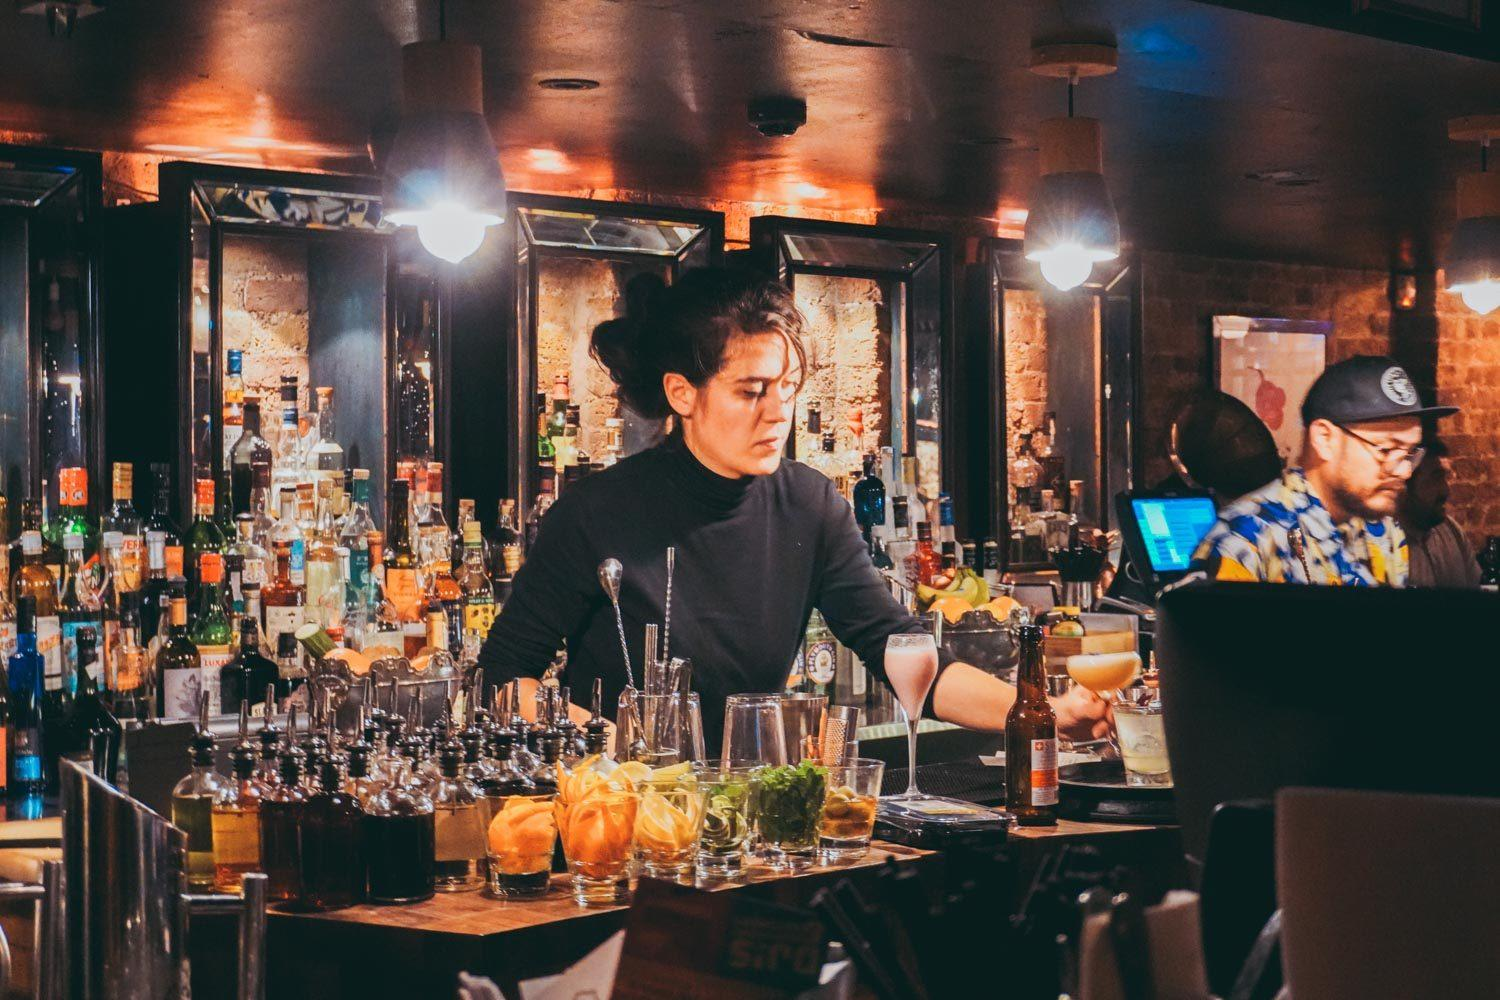 Callooh Callay- One of the best bars in Shoreditch, London